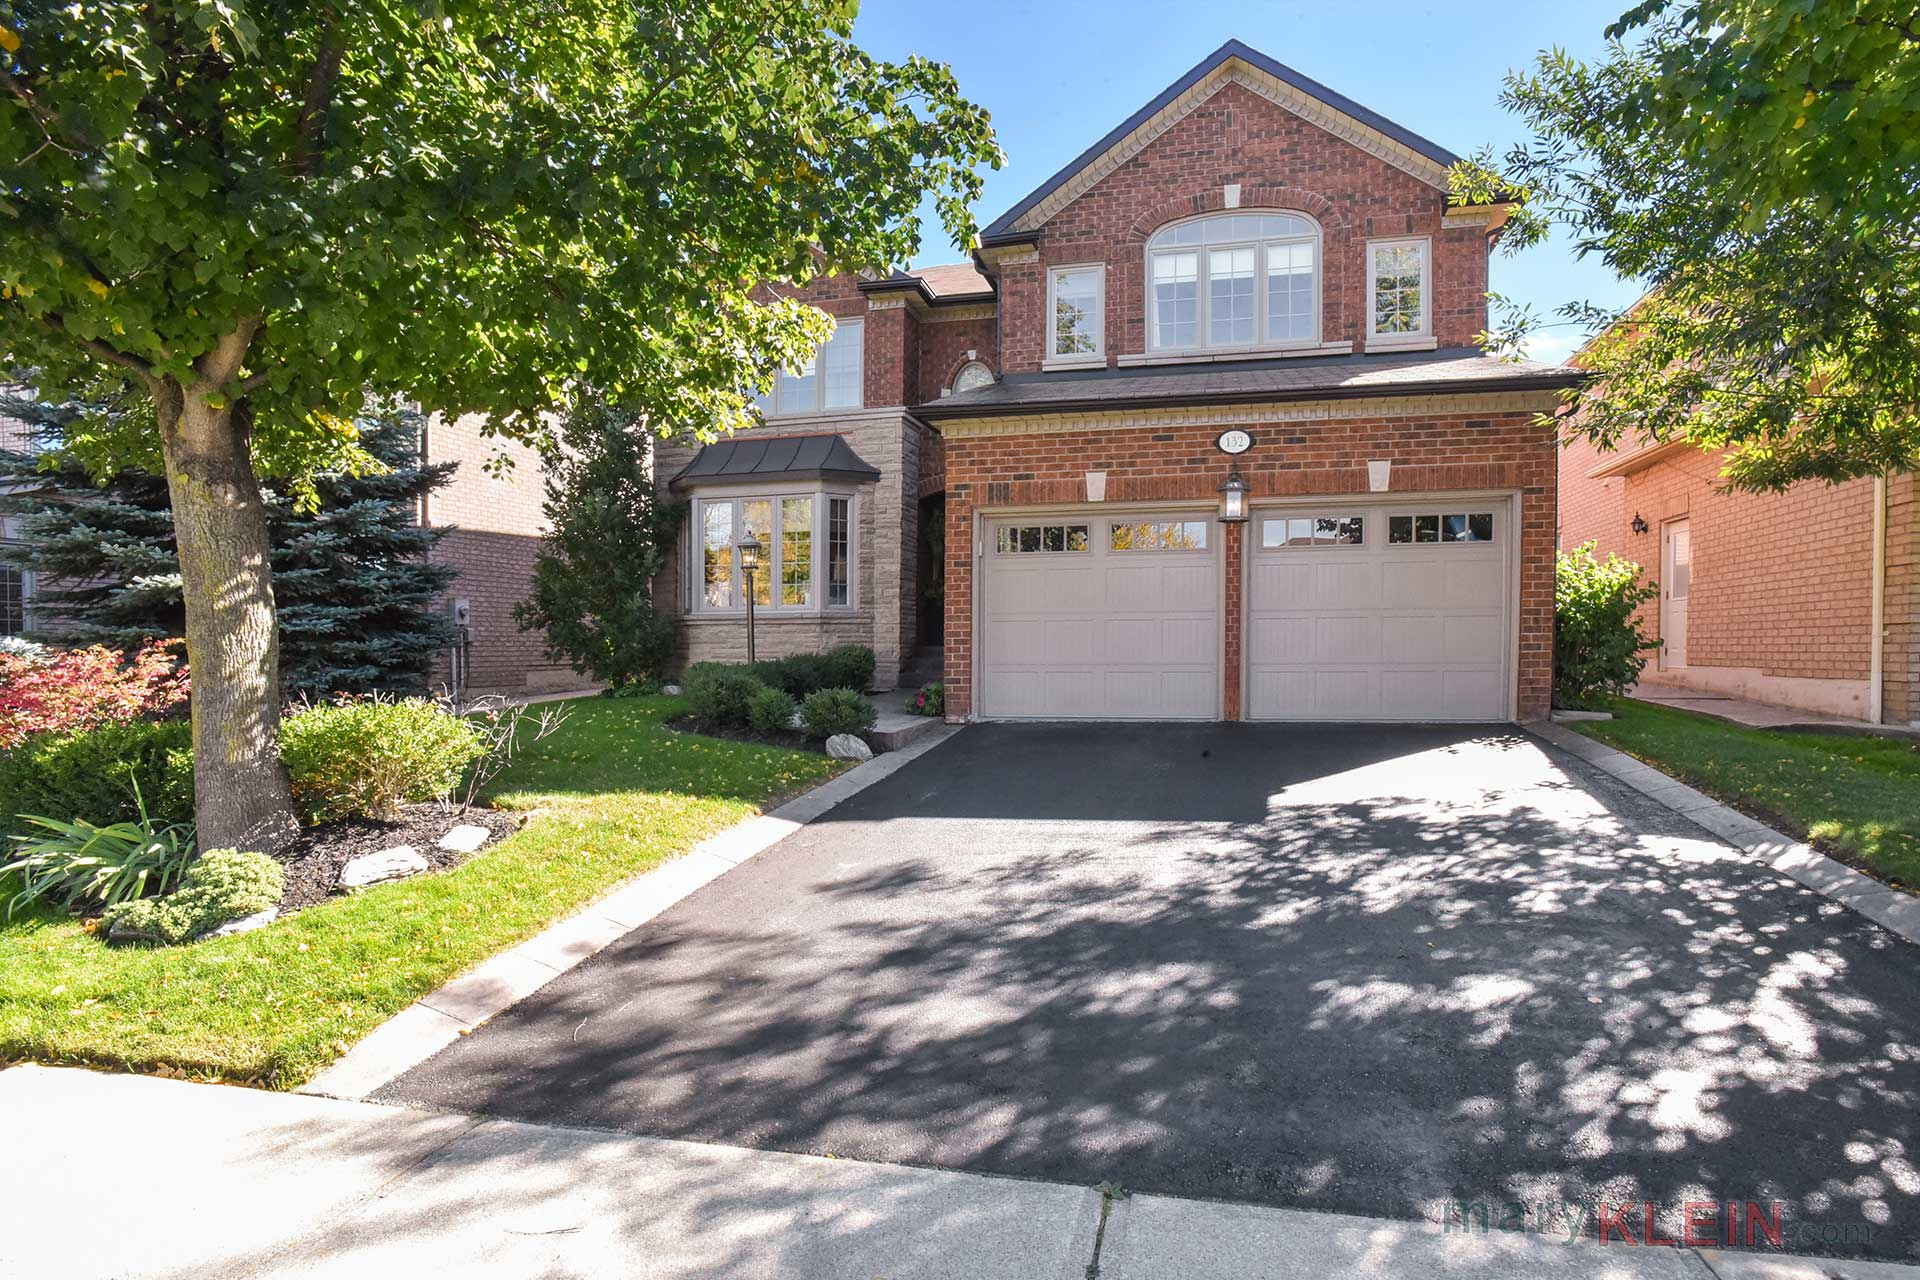 132 Royal Valley Drive, Caledon, 4 bedroom home for sale, Valleywood, Klein